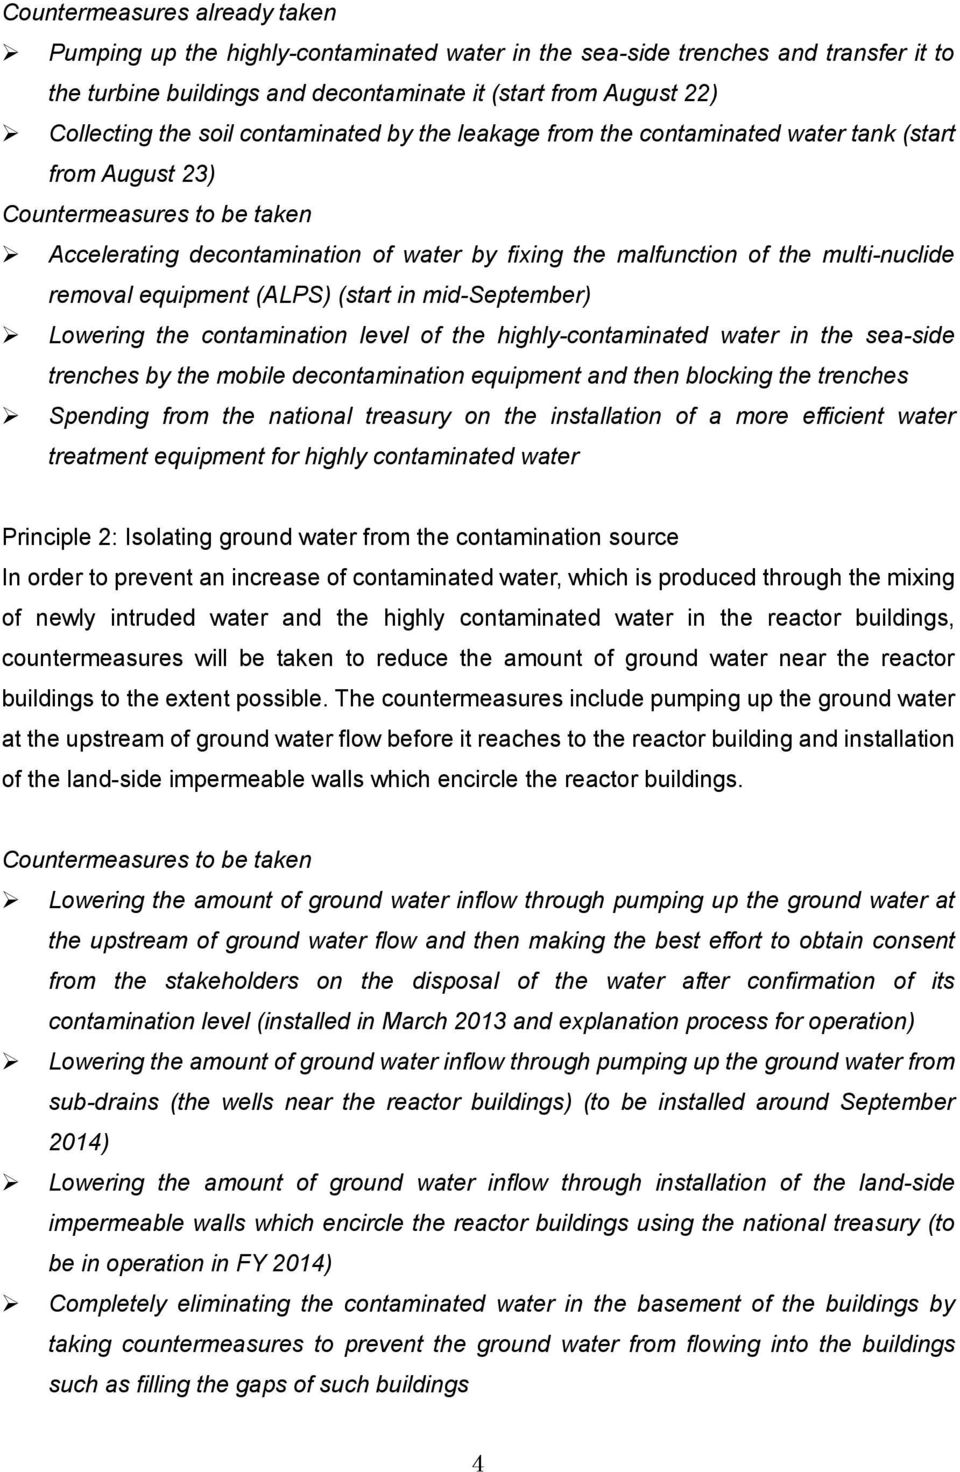 multi-nuclide removal equipment (ALPS) (start in mid-september) Lowering the contamination level of the highly-contaminated water in the sea-side trenches by the mobile decontamination equipment and